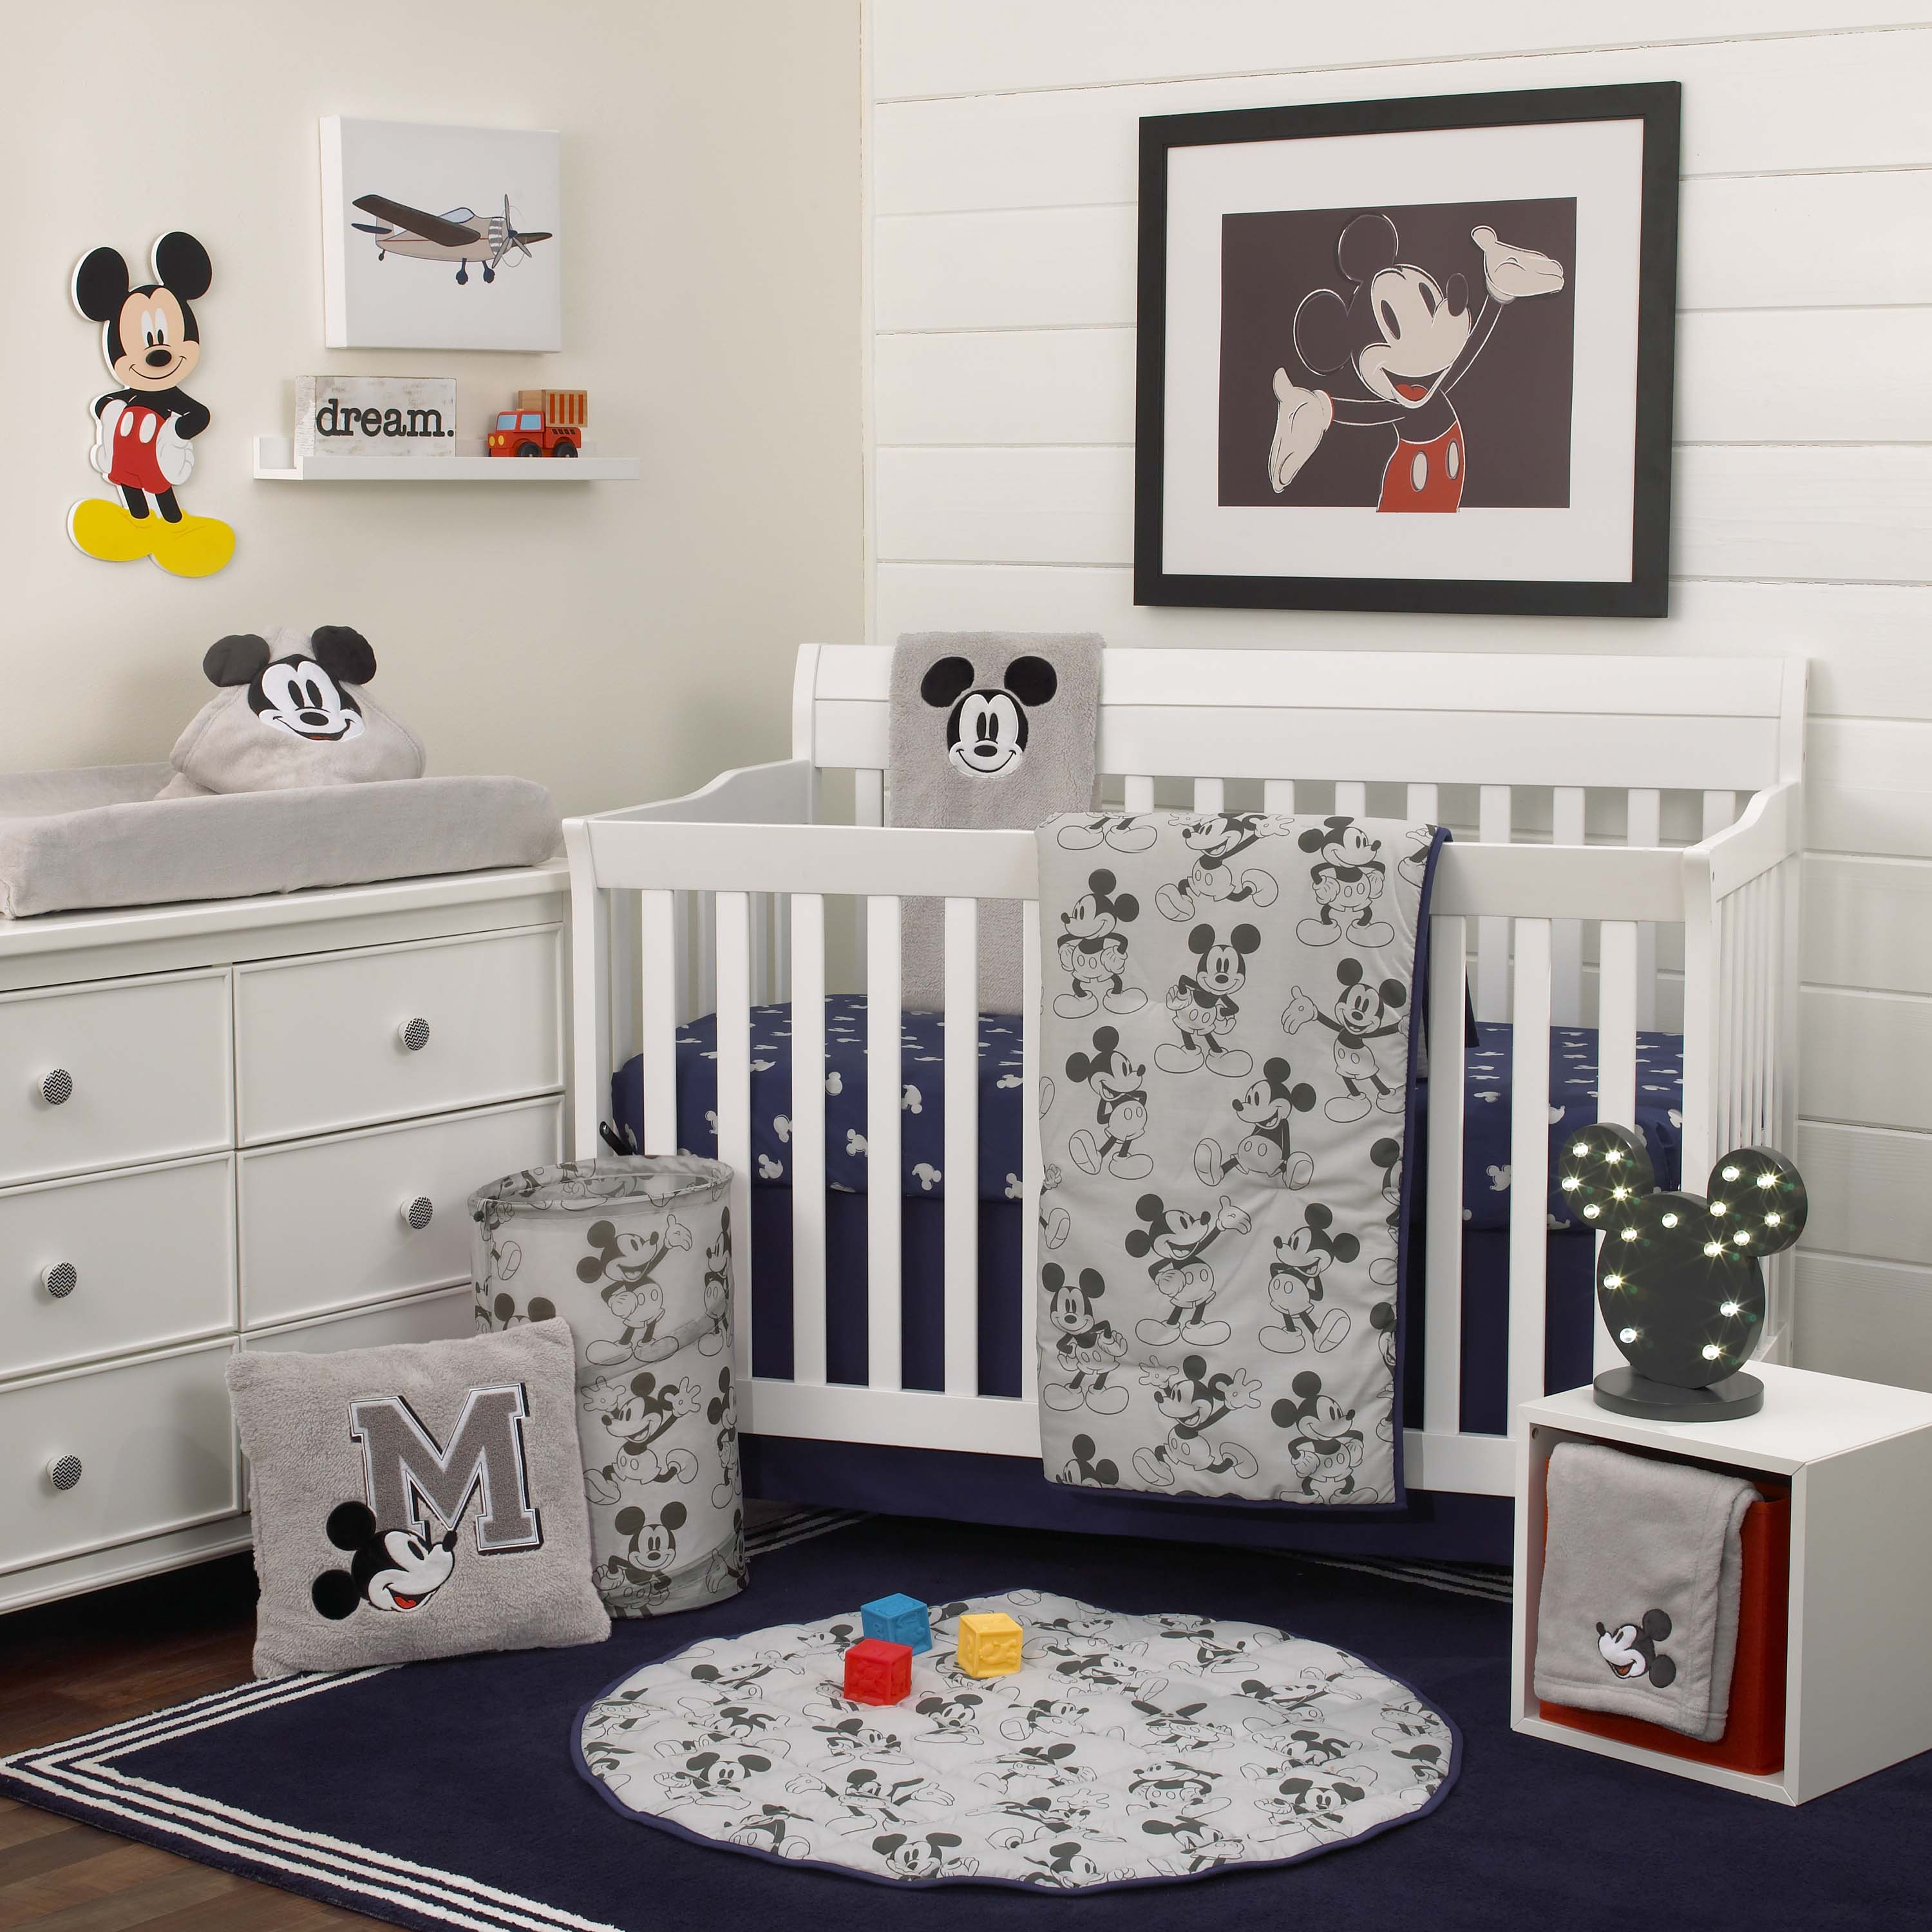 Disney Mickey Mouse 6 Piece Nursery Crib Bedding Set, Comforter, Two 100% Cotton Fitted Crib Sheets, Dust Ruffle, Baby Blanket, Changing Pad Cover, Grey, Navy & Dark Charcoal